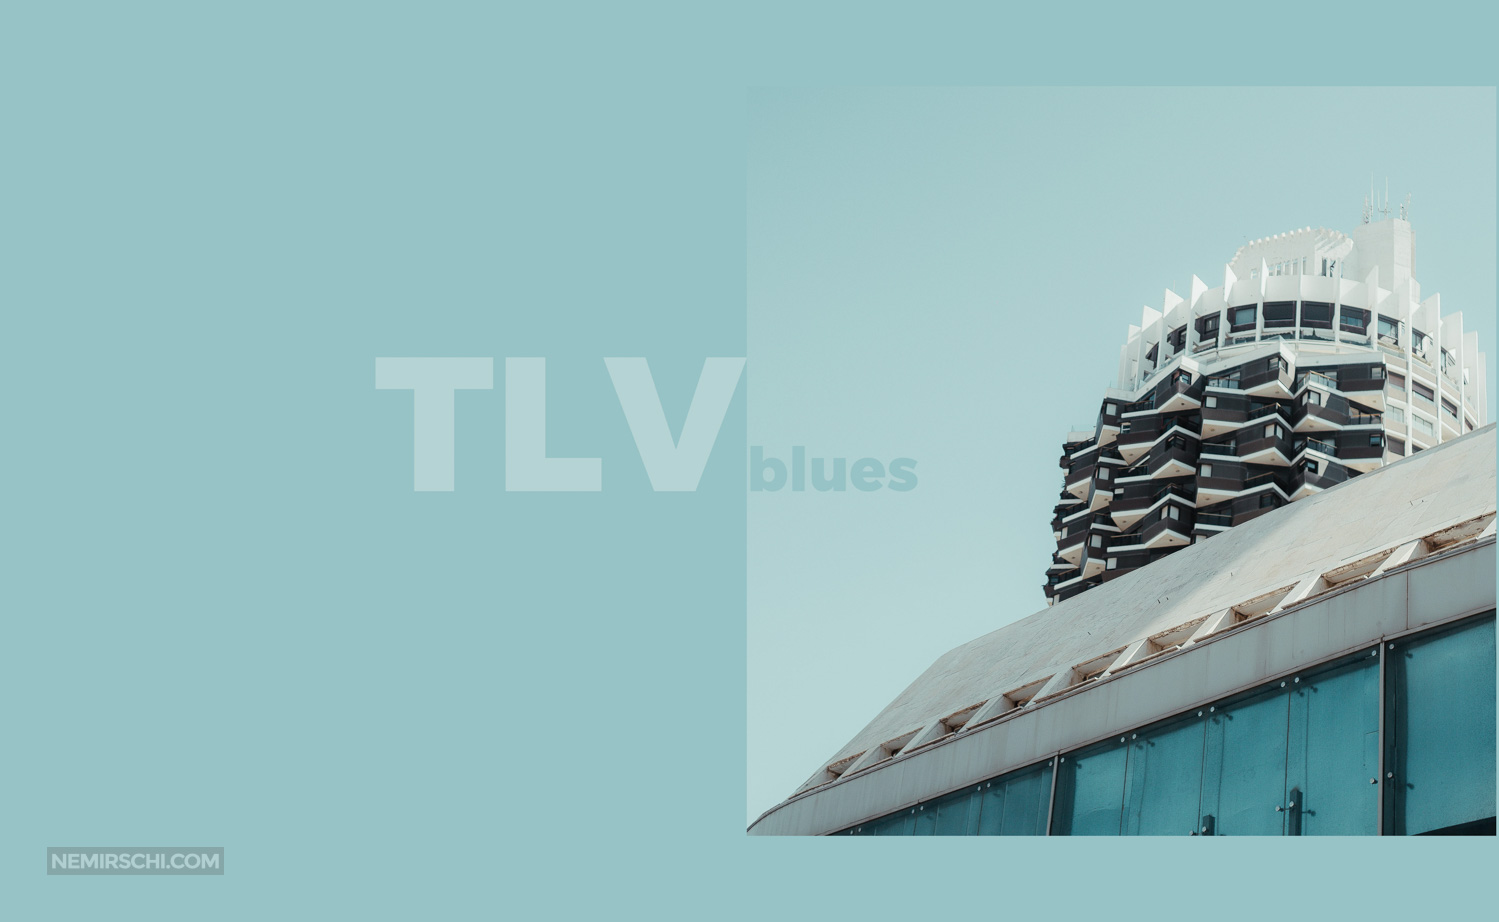 TLV blues cover